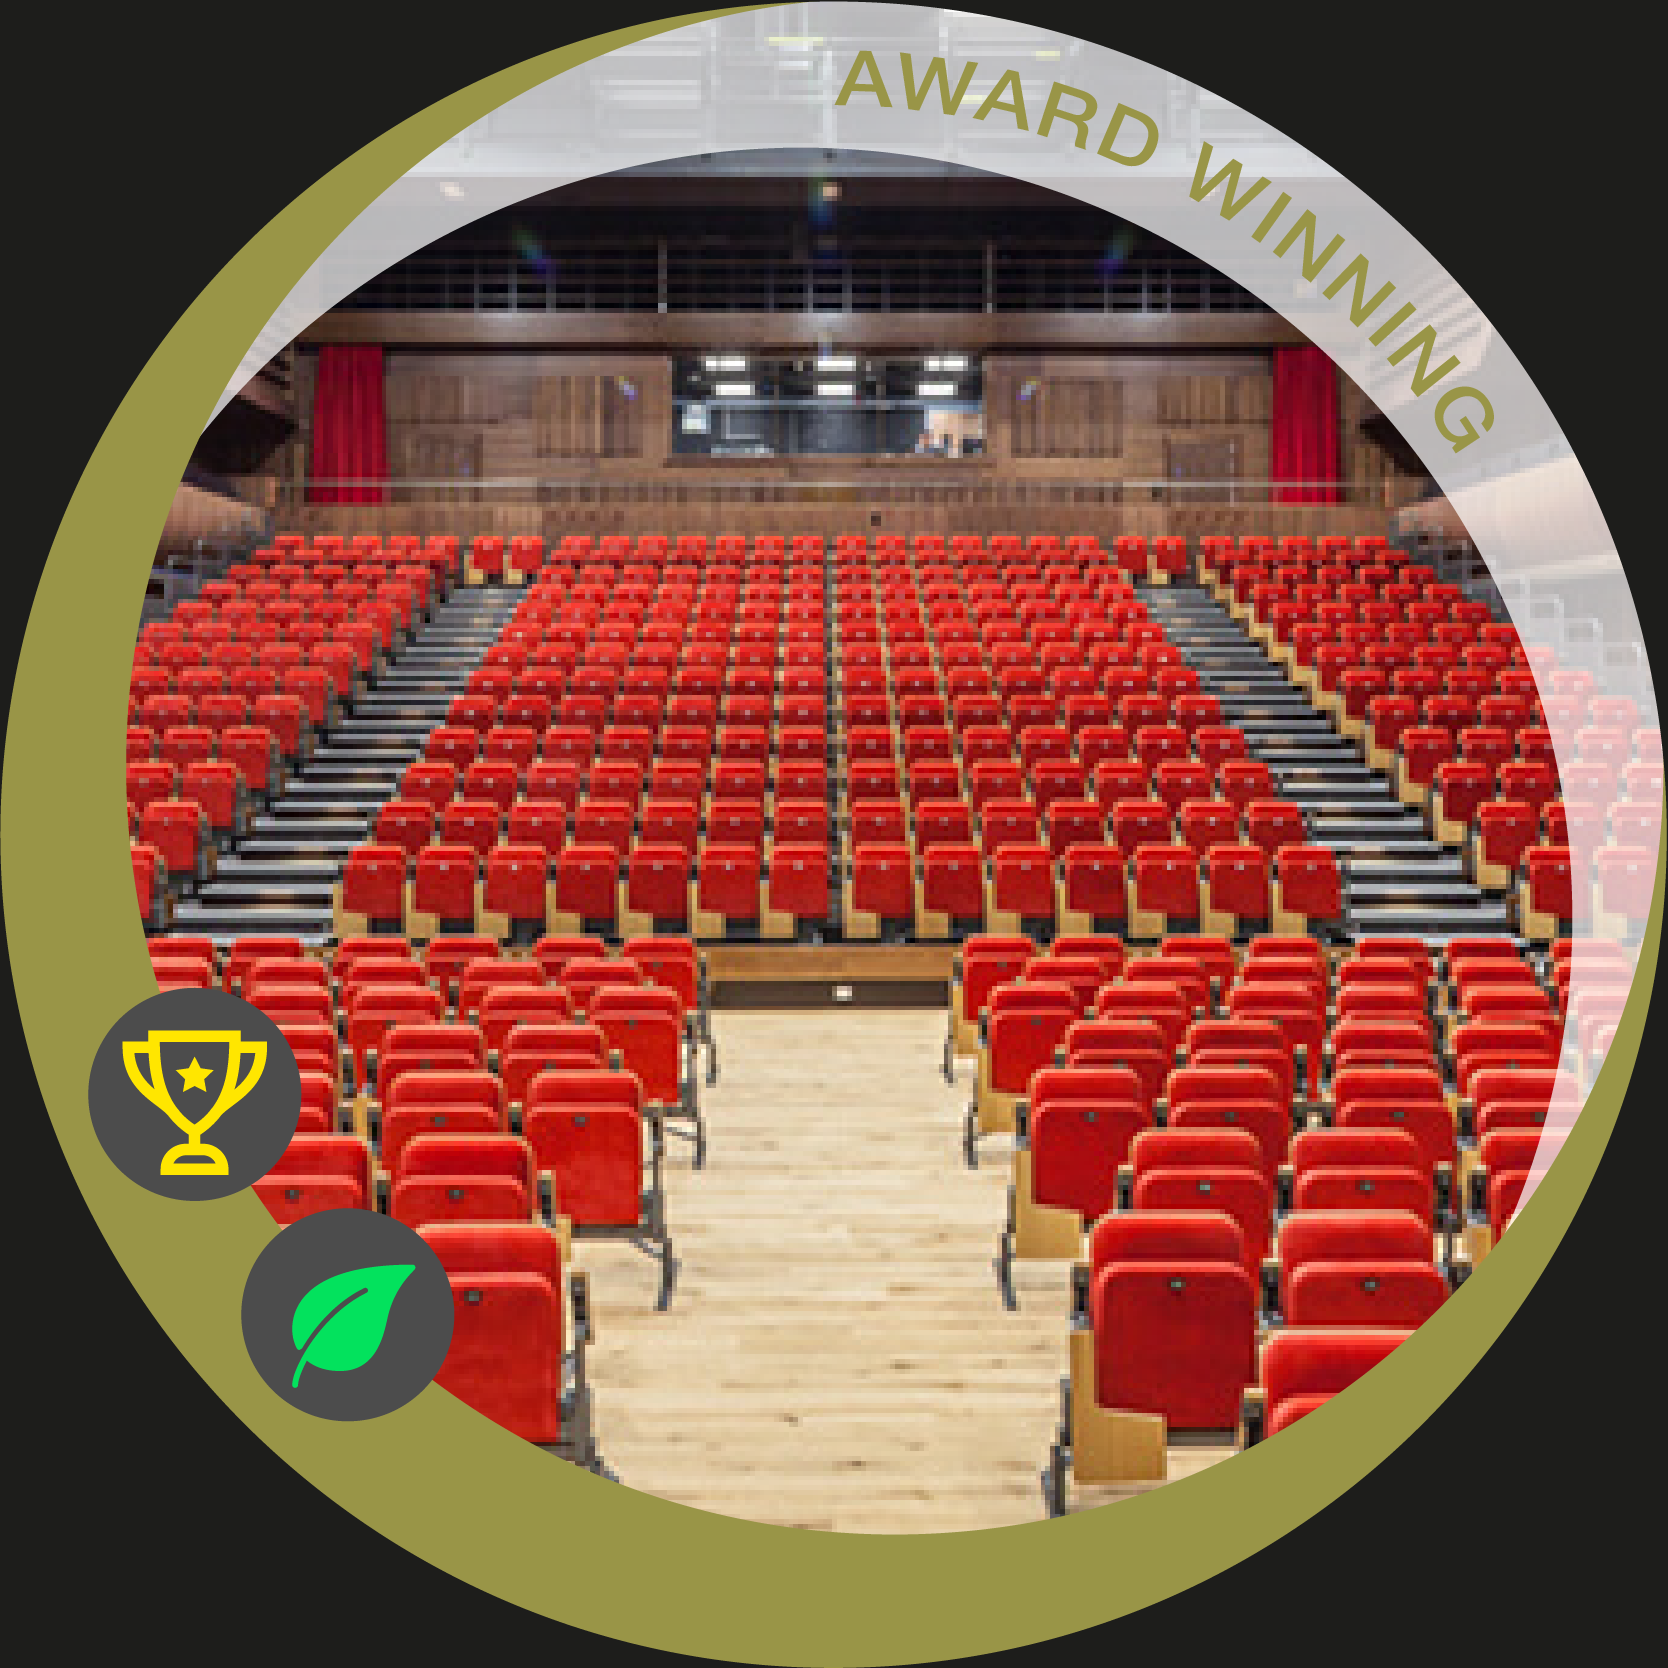 Swansea-Great-Hall-BREEAM-Award-winning